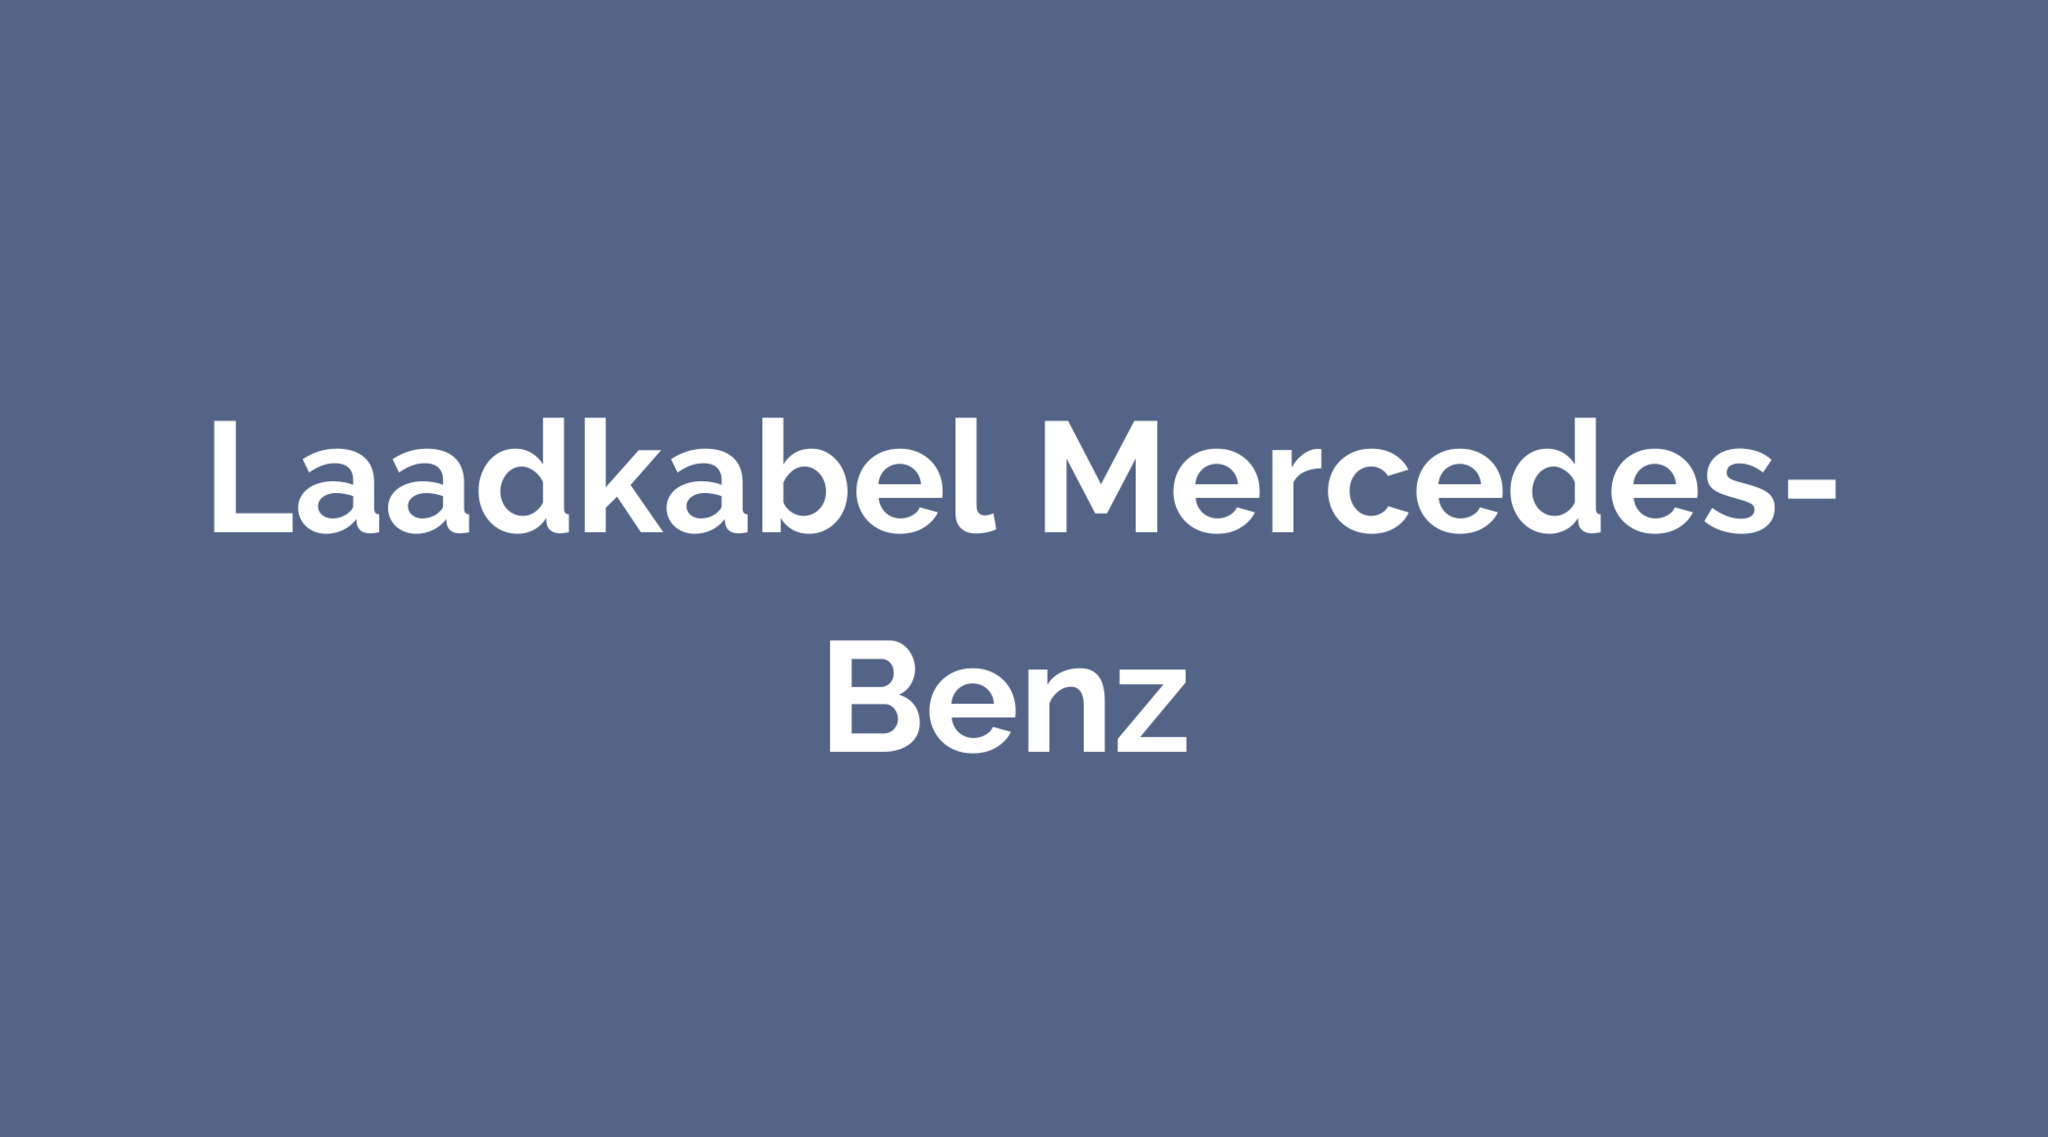 Laadkabel Mercedes-Benz